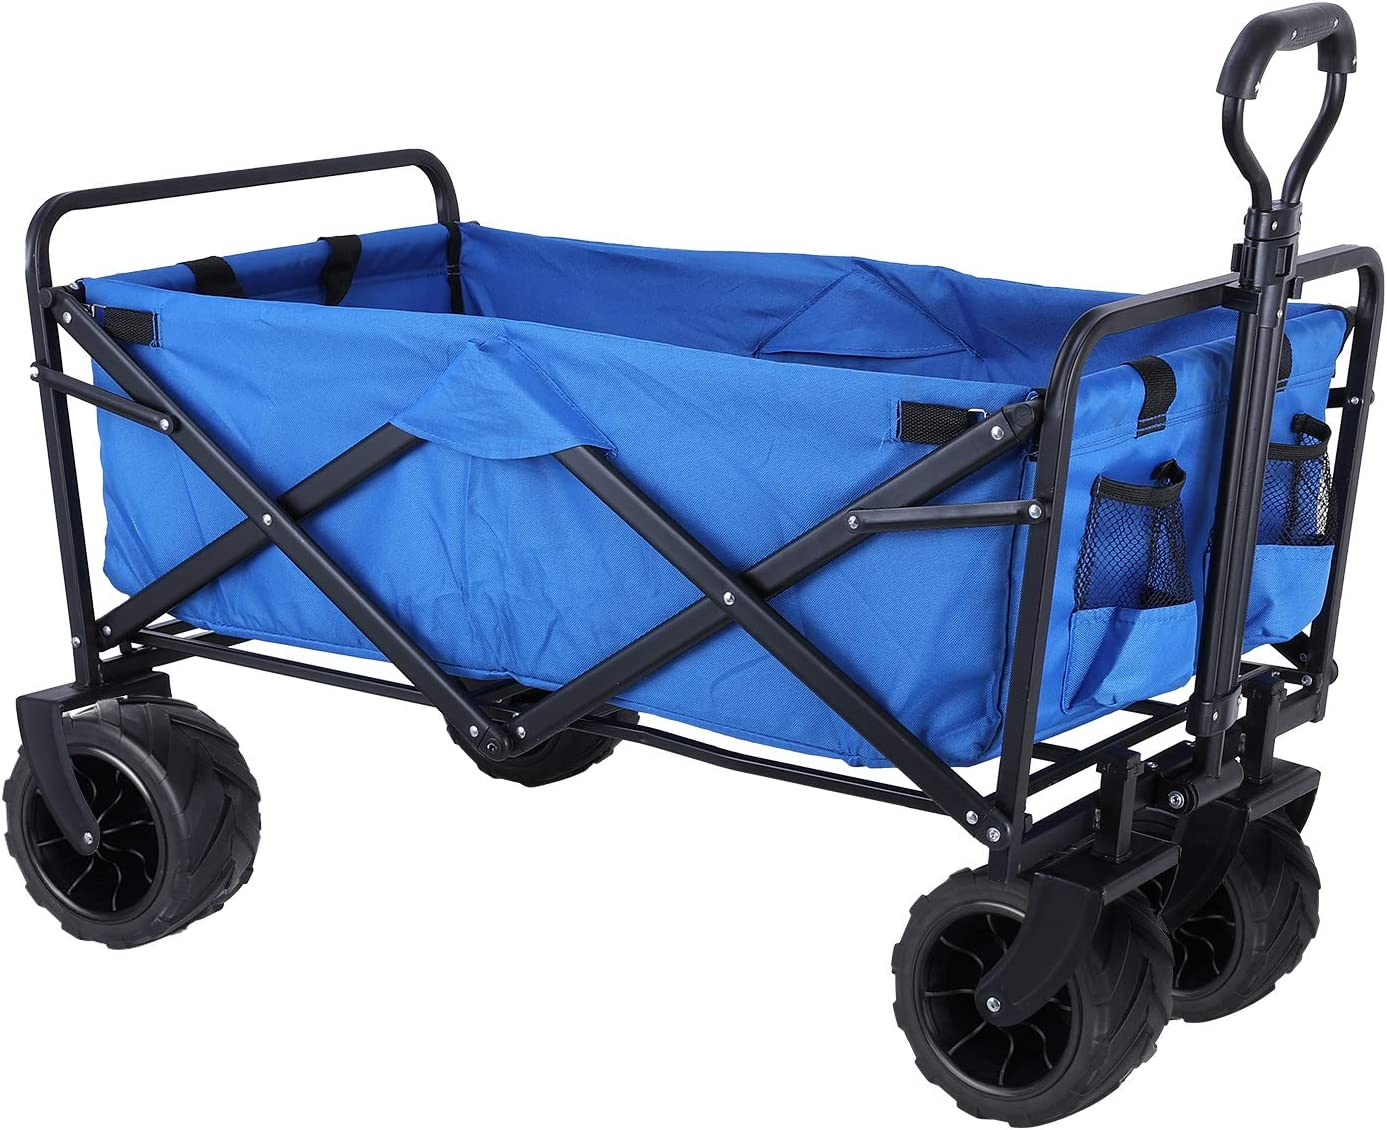 Snan Collapsible Outdoor Utility Wagon